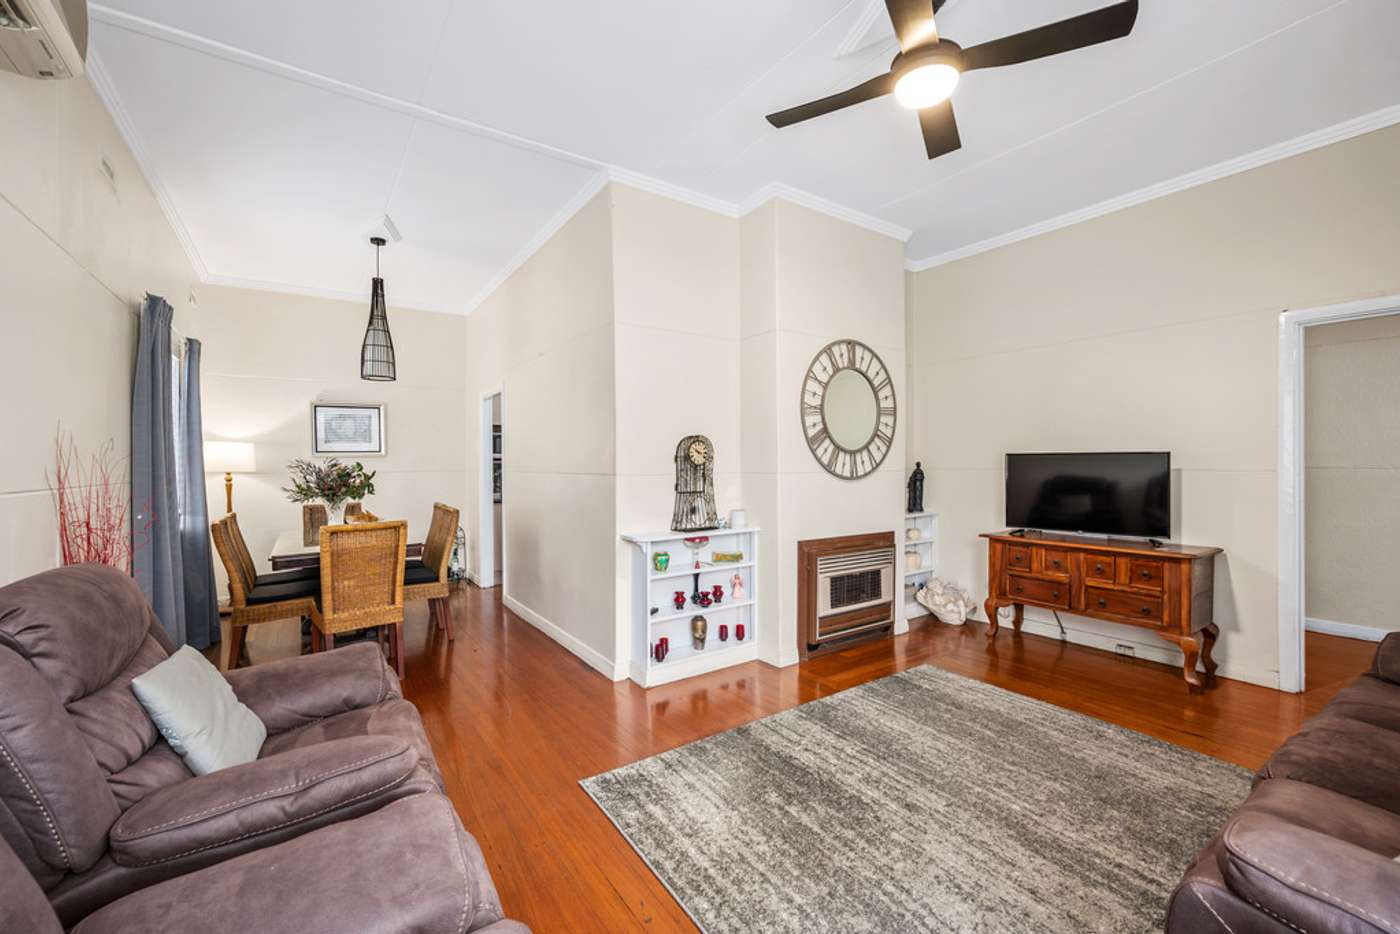 Sixth view of Homely house listing, 15 Beach Street, Swansea NSW 2281